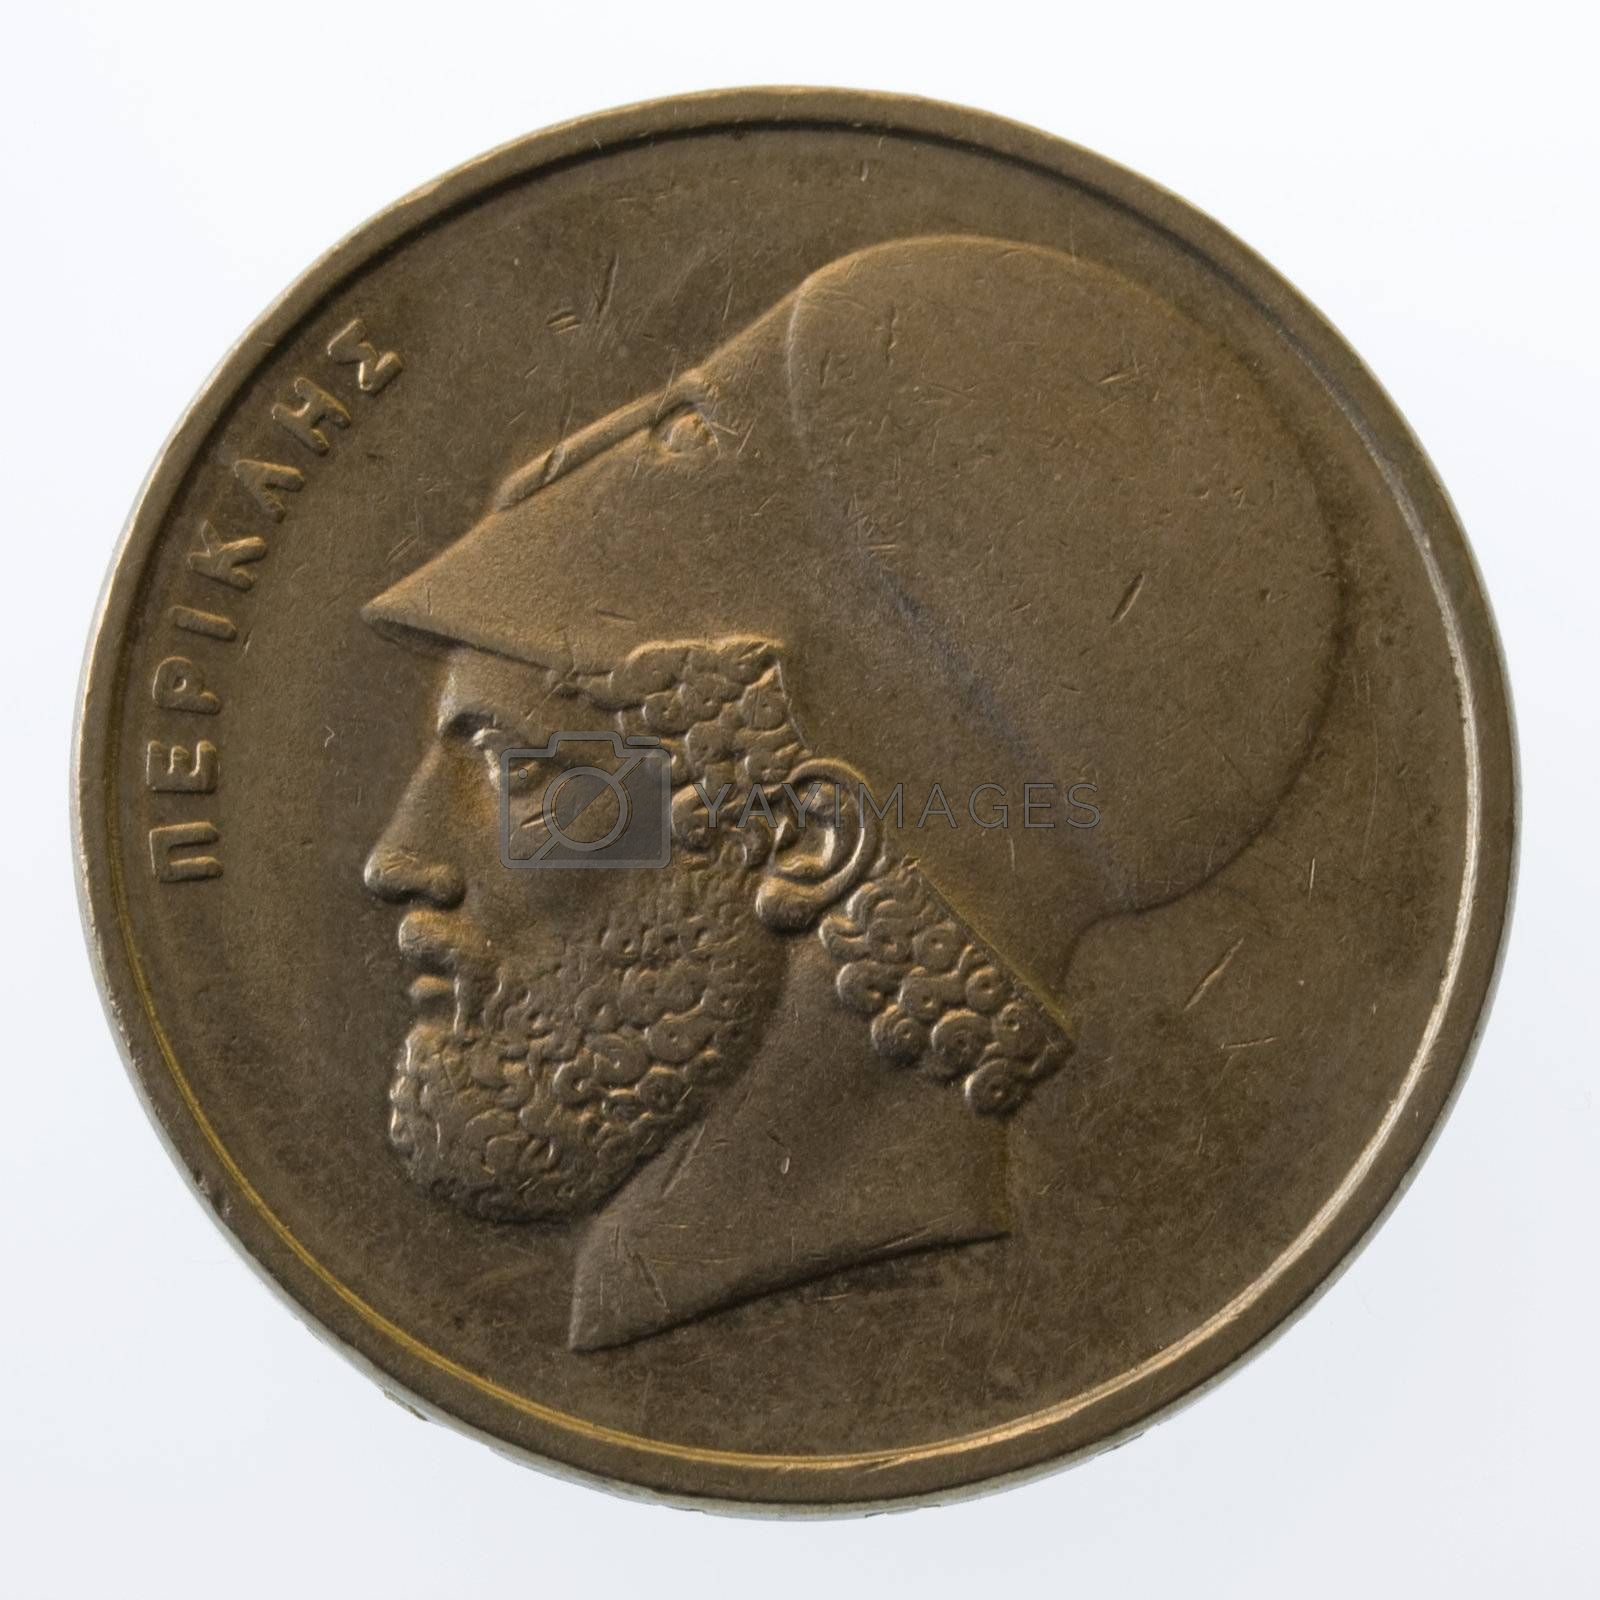 Pericles, ancient Greek leader and statesman, on 20 drachmas coin (1984), isolated on white